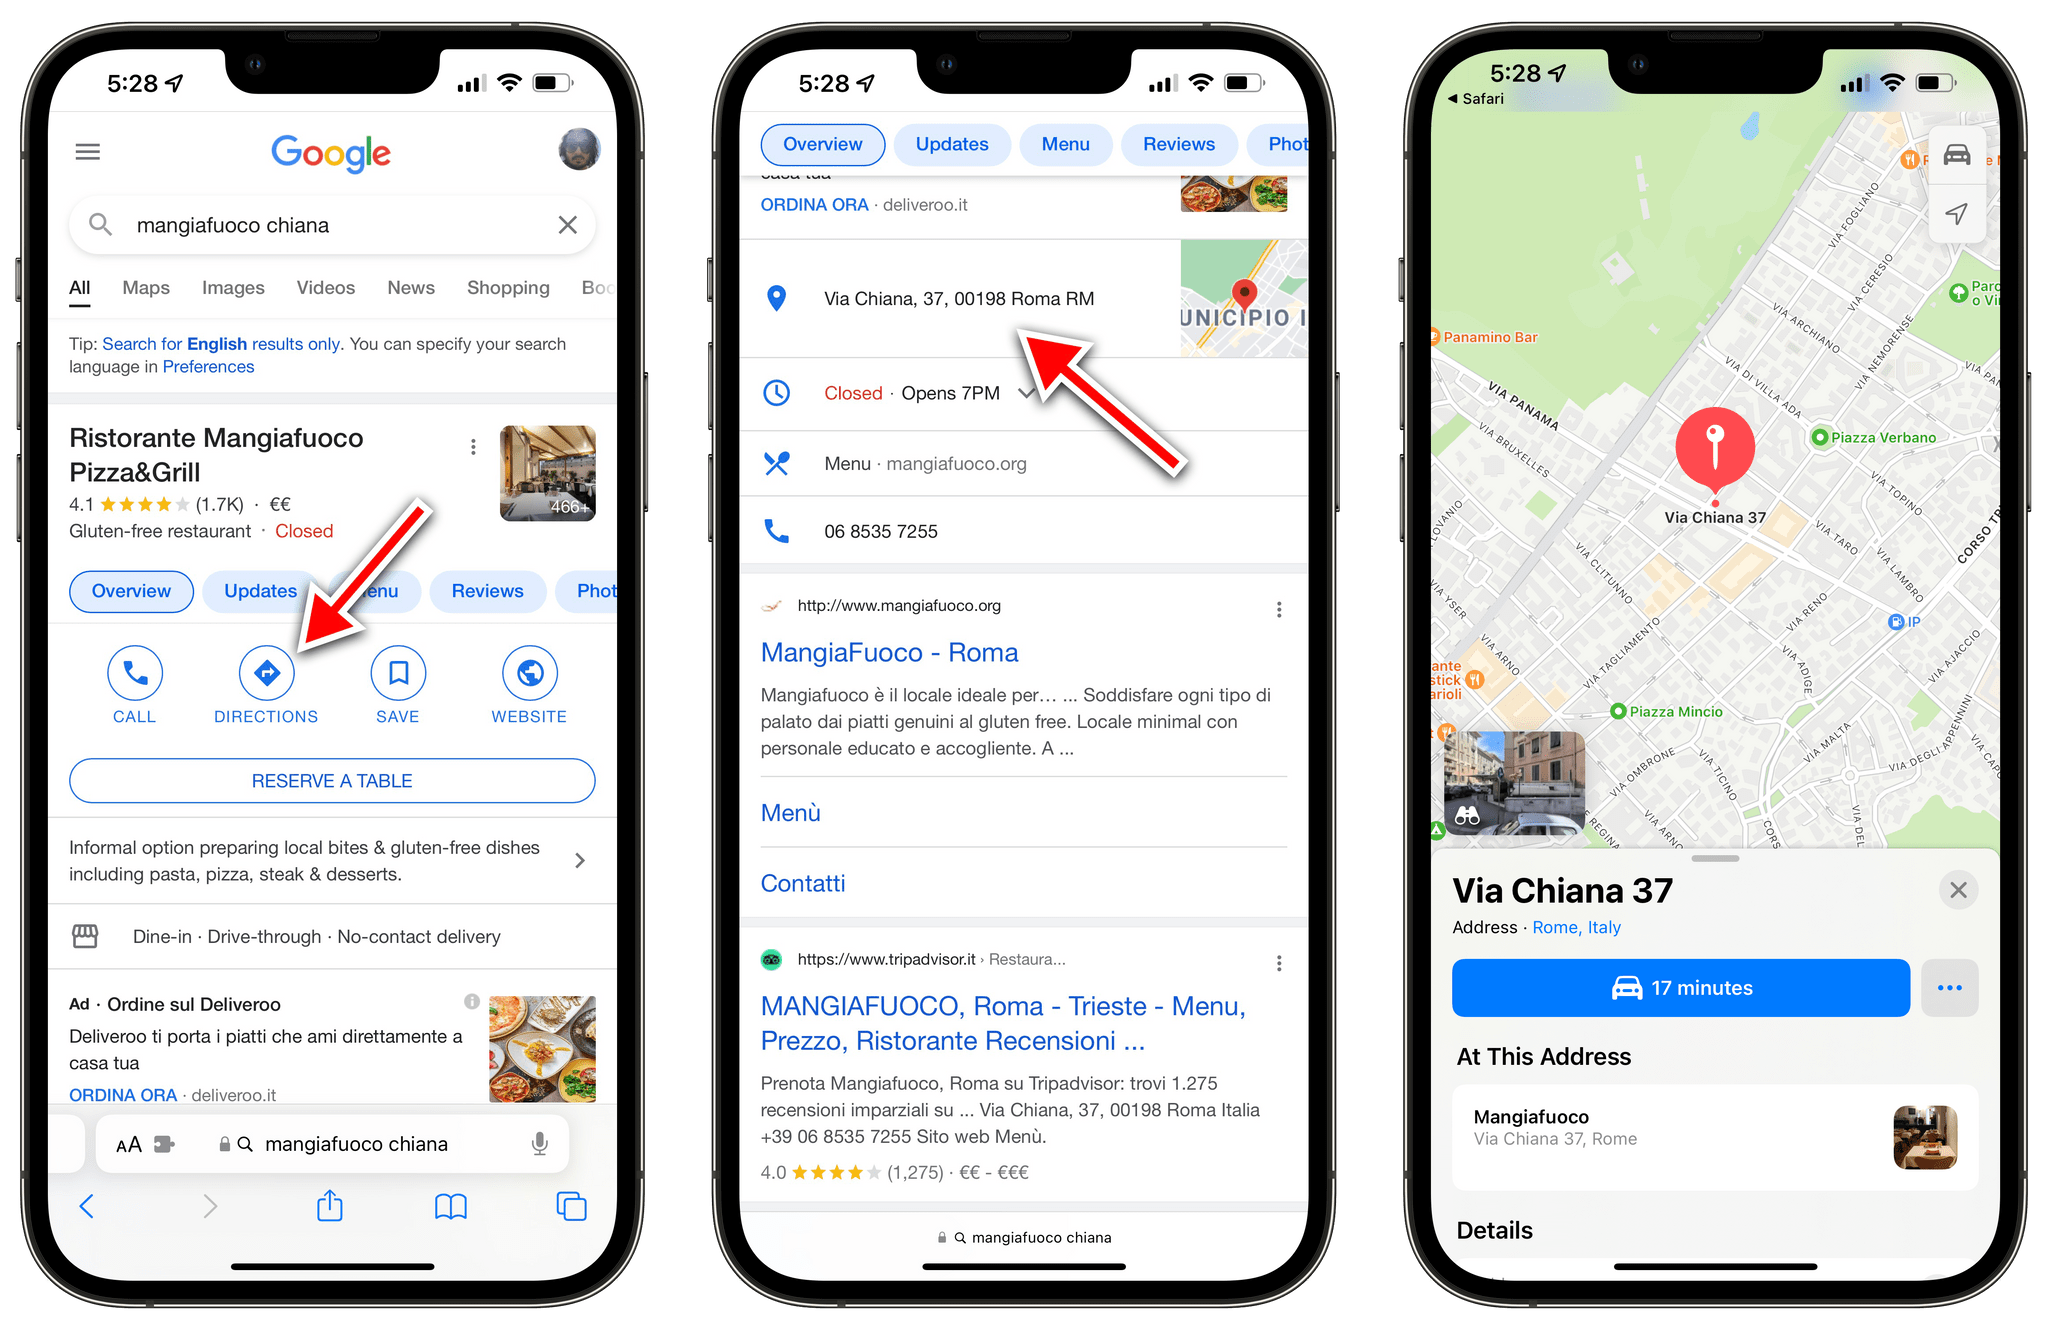 All of these place links get redirected to Apple Maps with Mapper.